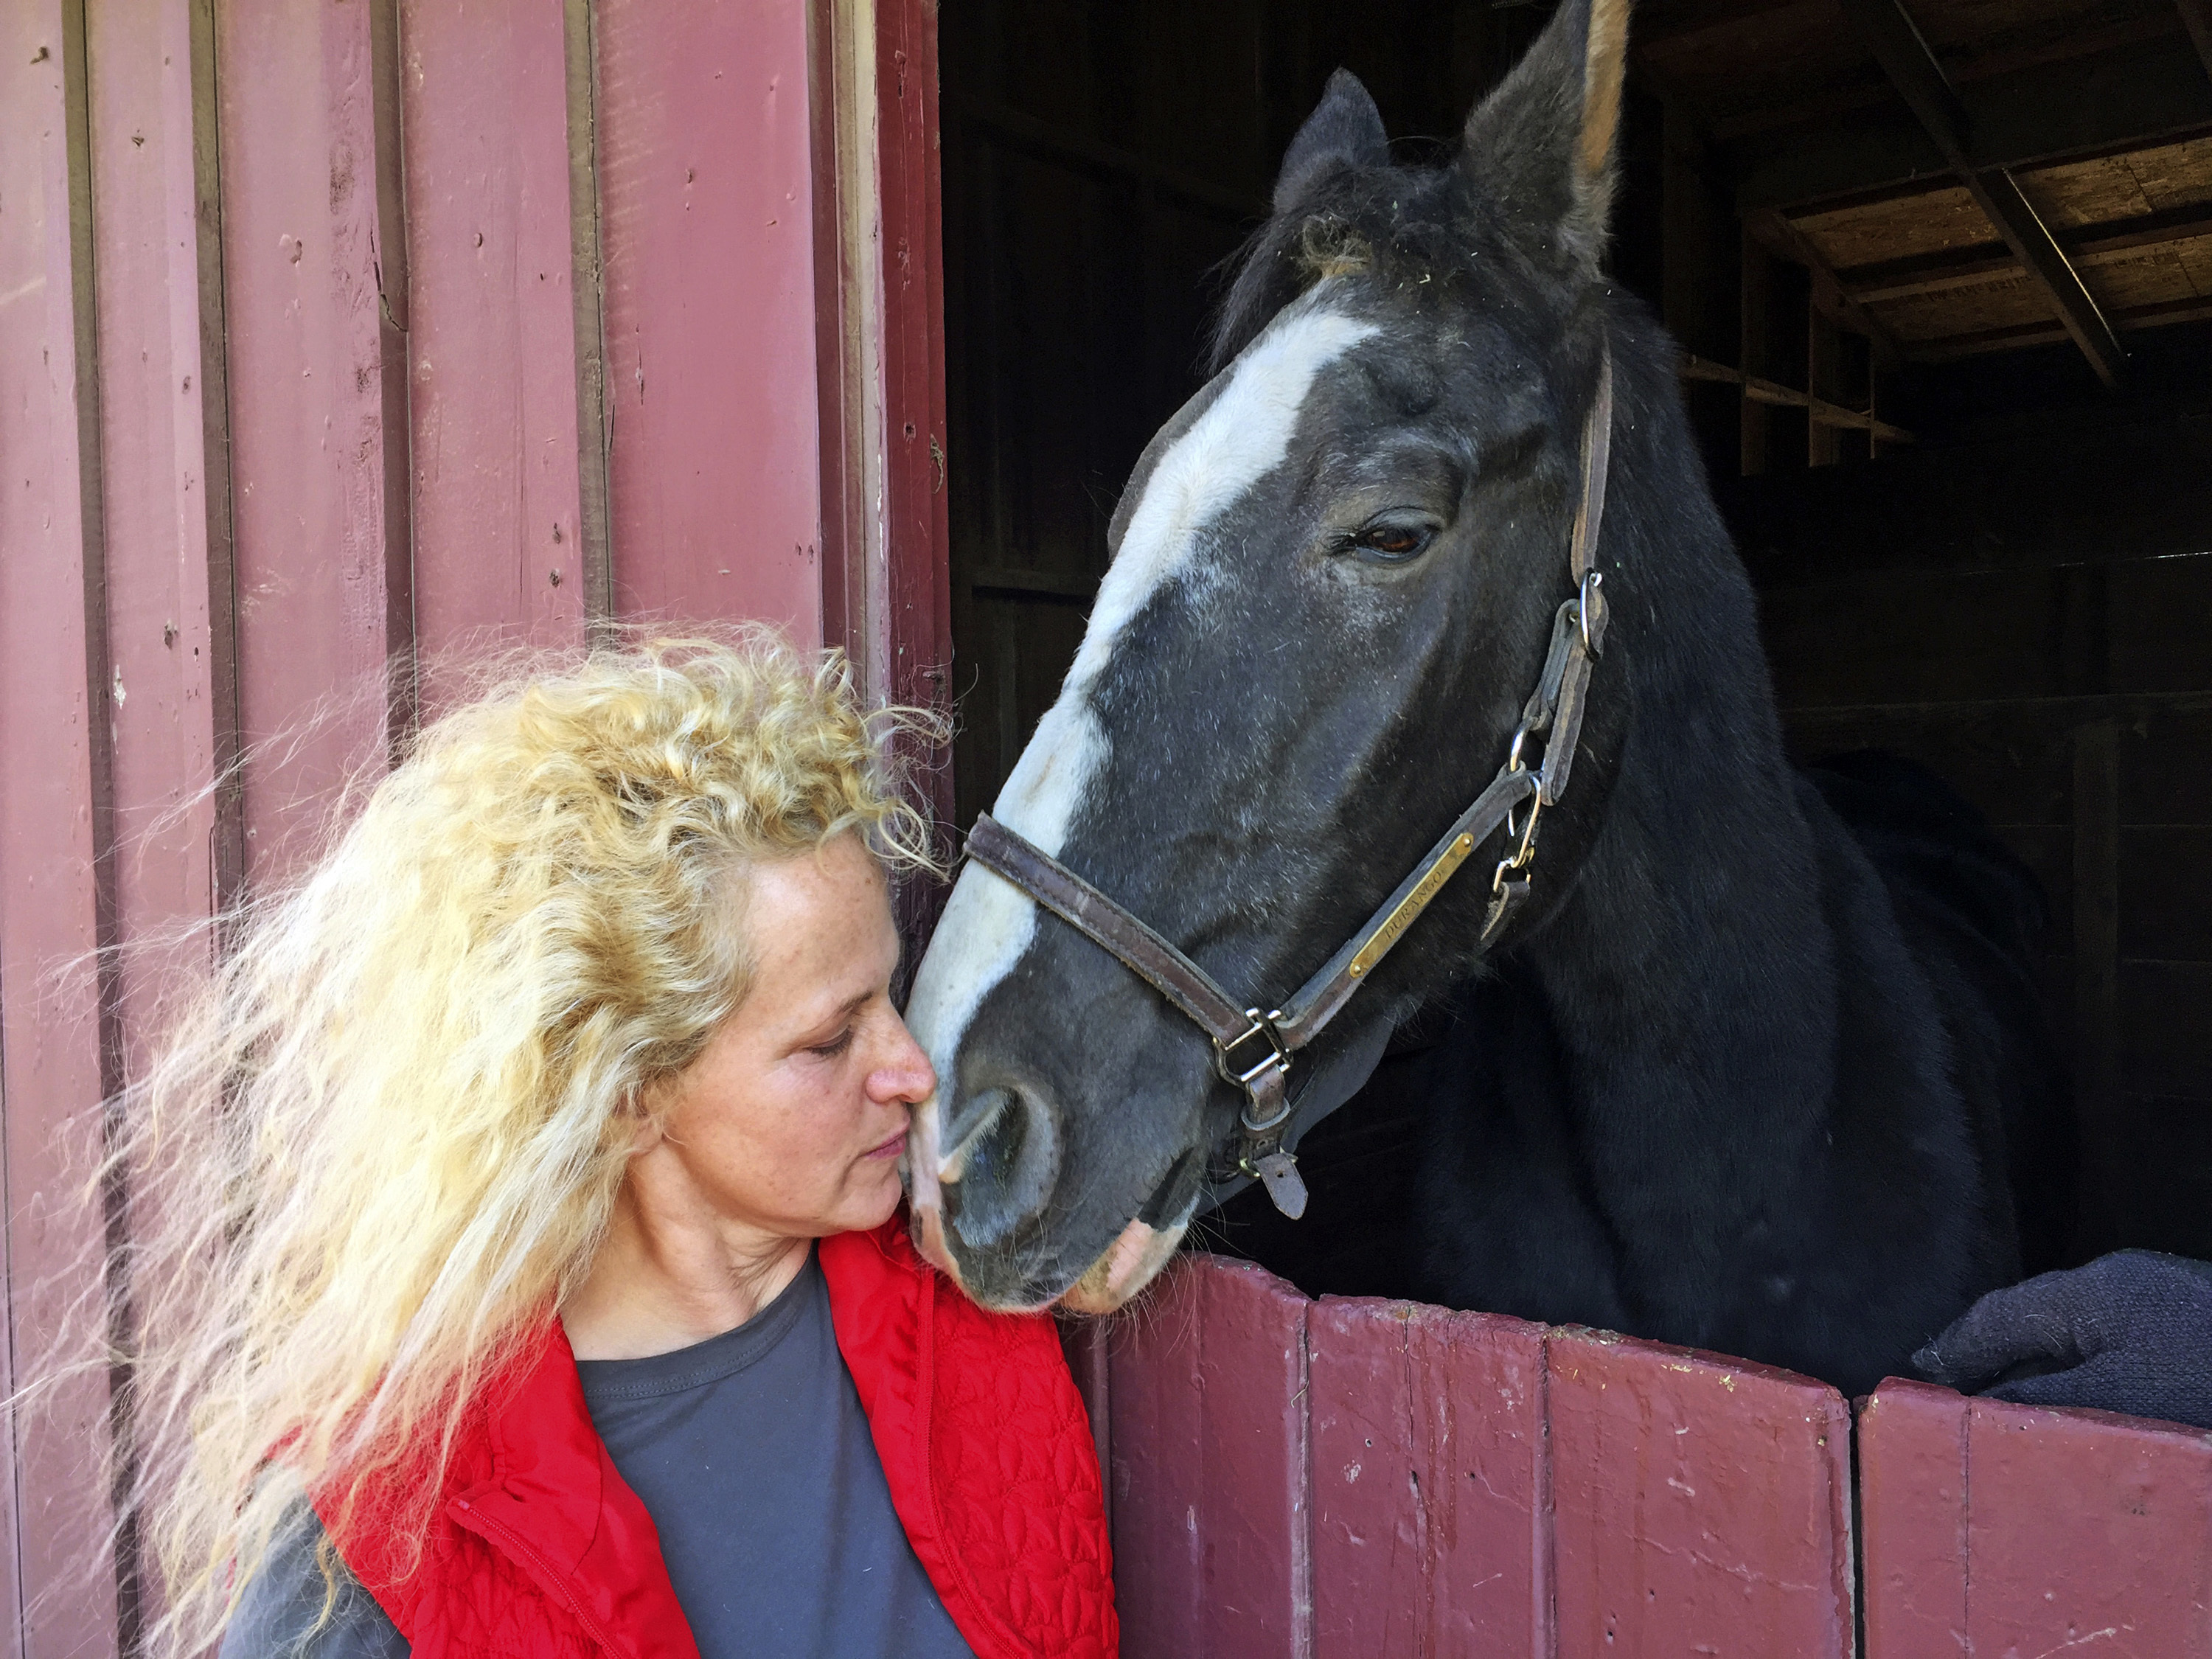 "<div class=""meta image-caption""><div class=""origin-logo origin-image none""><span>none</span></div><span class=""caption-text"">Wendy Frank poses with one of her horses at the Ventura County Fairgrounds evacuation center in Ventura, Calif., Thursday, Dec. 7, 2017. (Amanda Lee Myers/AP Photo)</span></div>"